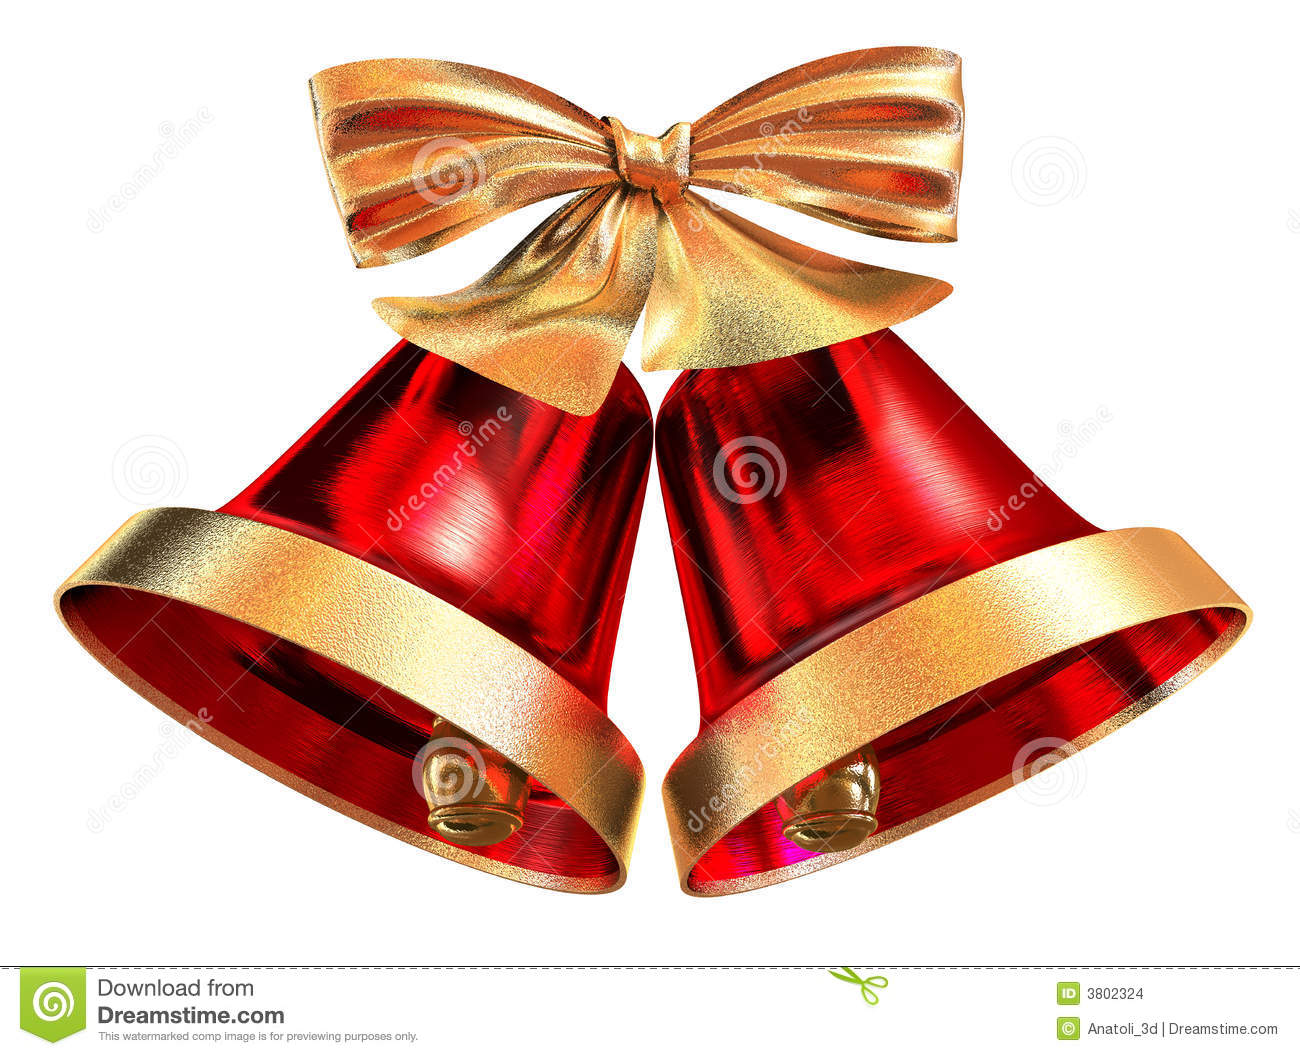 Christmas Bells Images.Christmas Bells Stock Photo Image Of Bells Bell Year